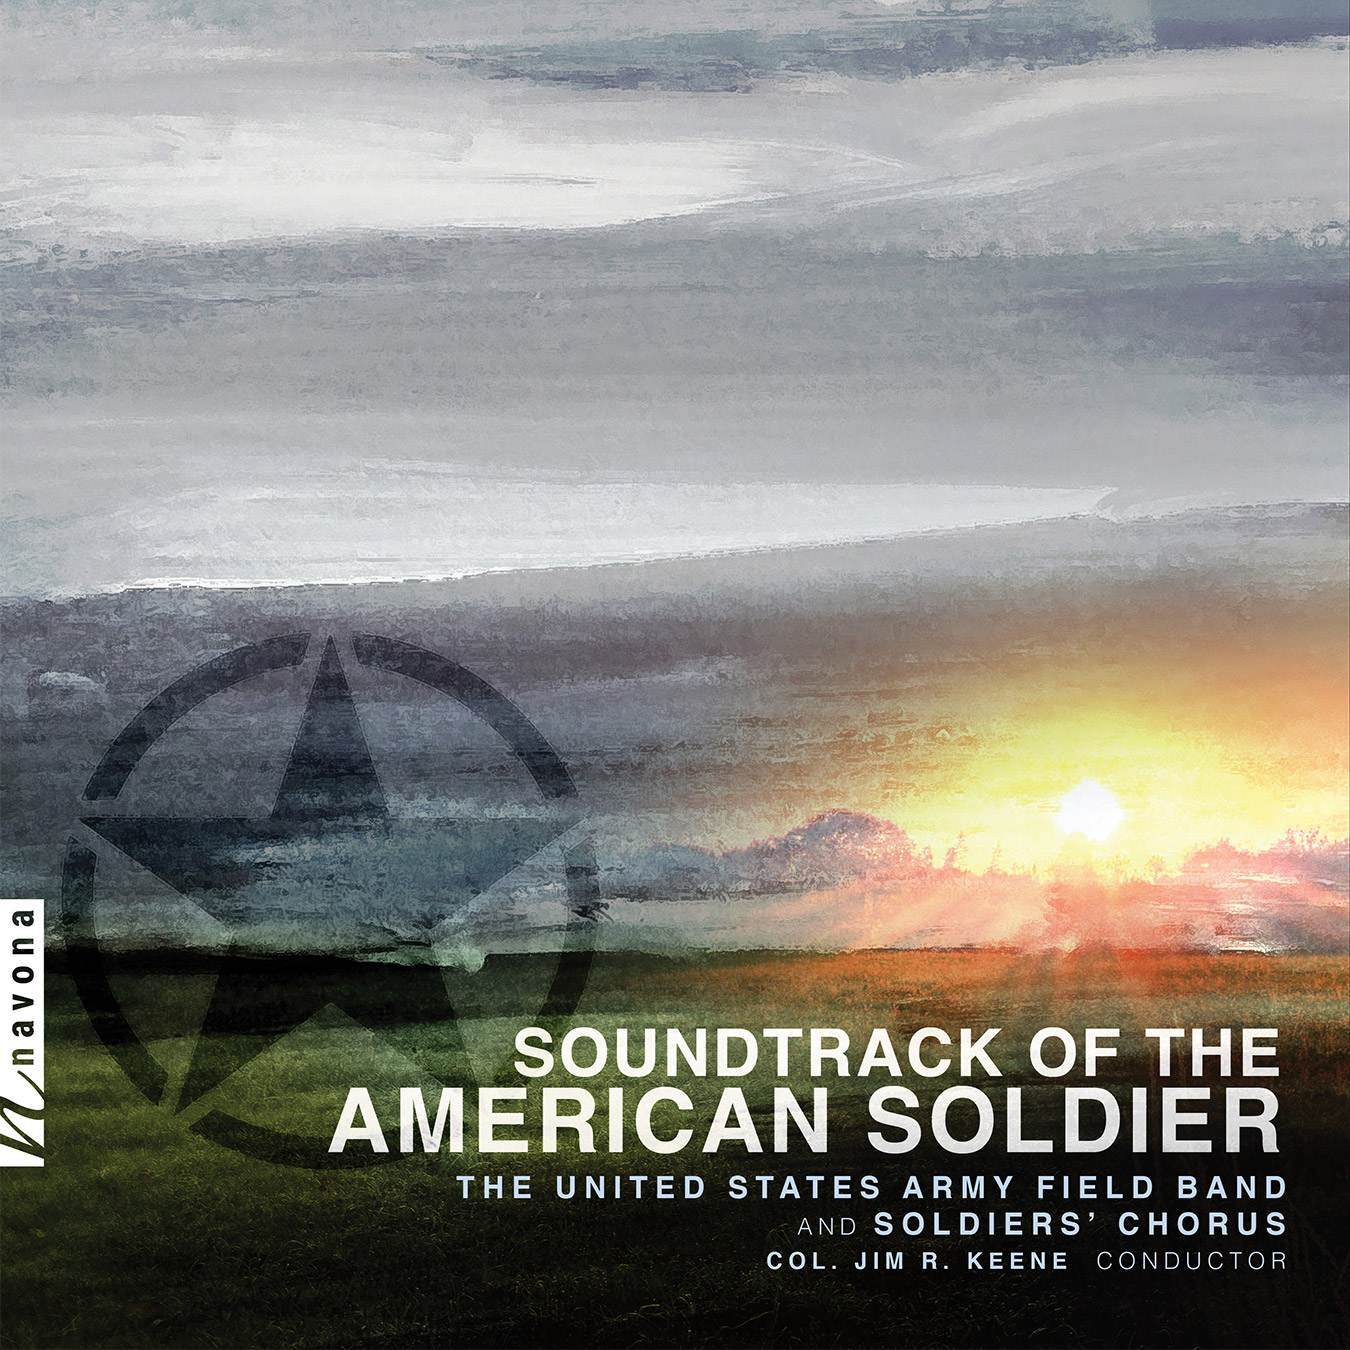 SOUNDTRACK OF THE AMERICAN SOLDIER - album cover